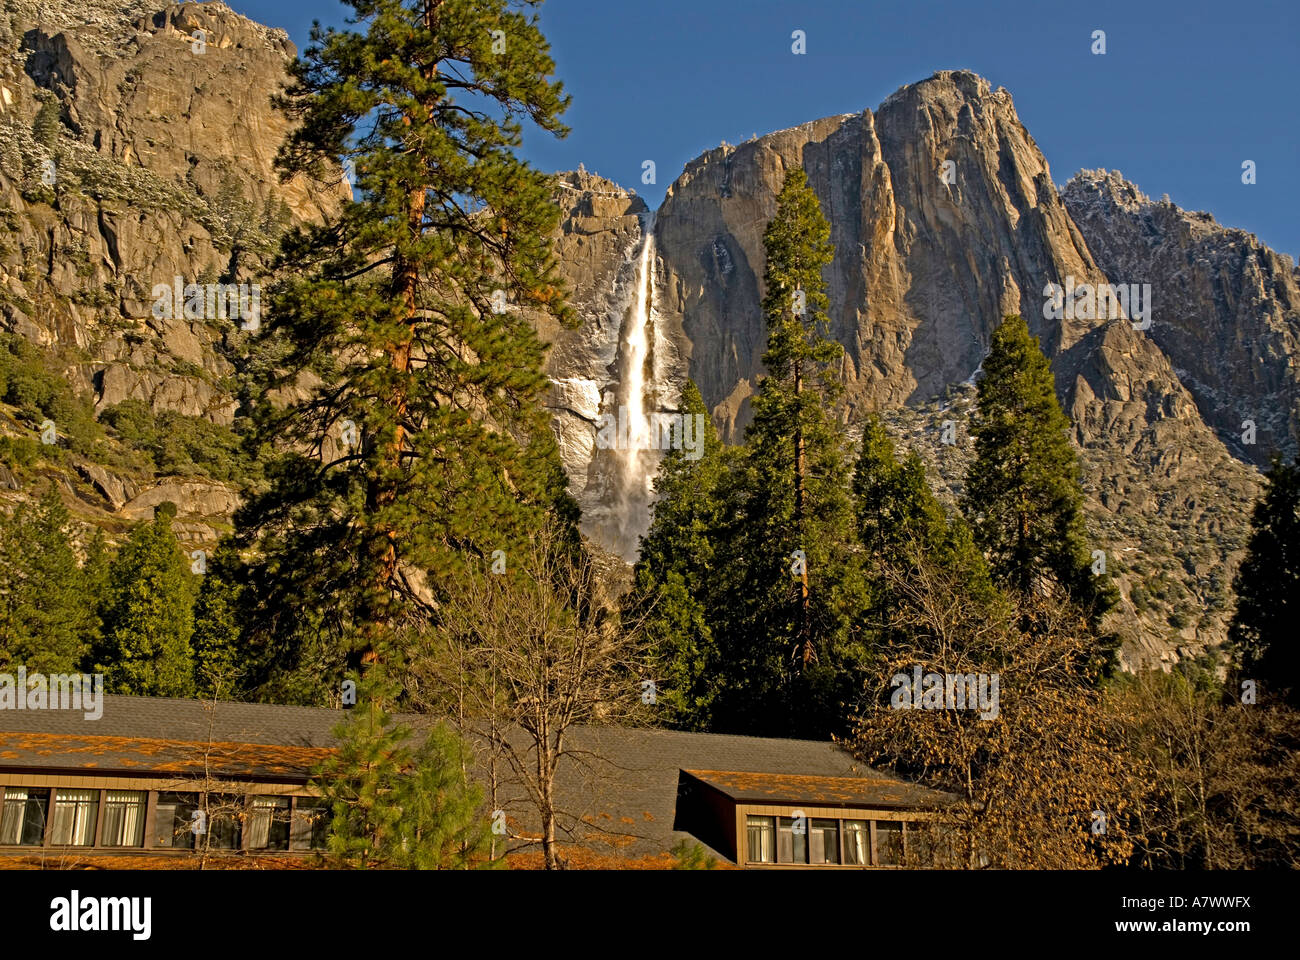 yosemite falls behind yosemite lodge stock photo 11922253 alamy